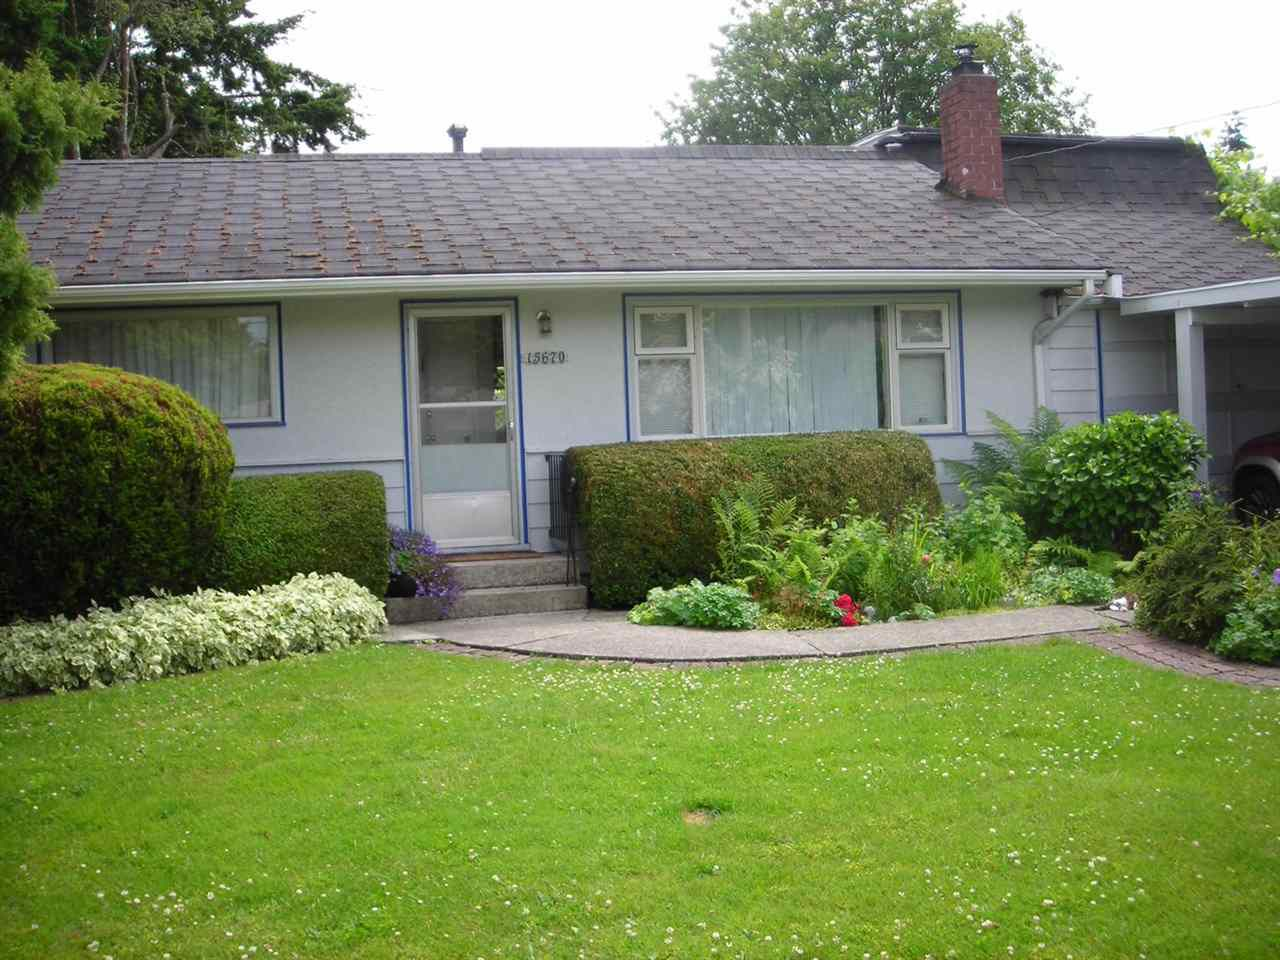 Main Photo: 15670 ROPER Avenue: White Rock House for sale (South Surrey White Rock)  : MLS®# R2039603